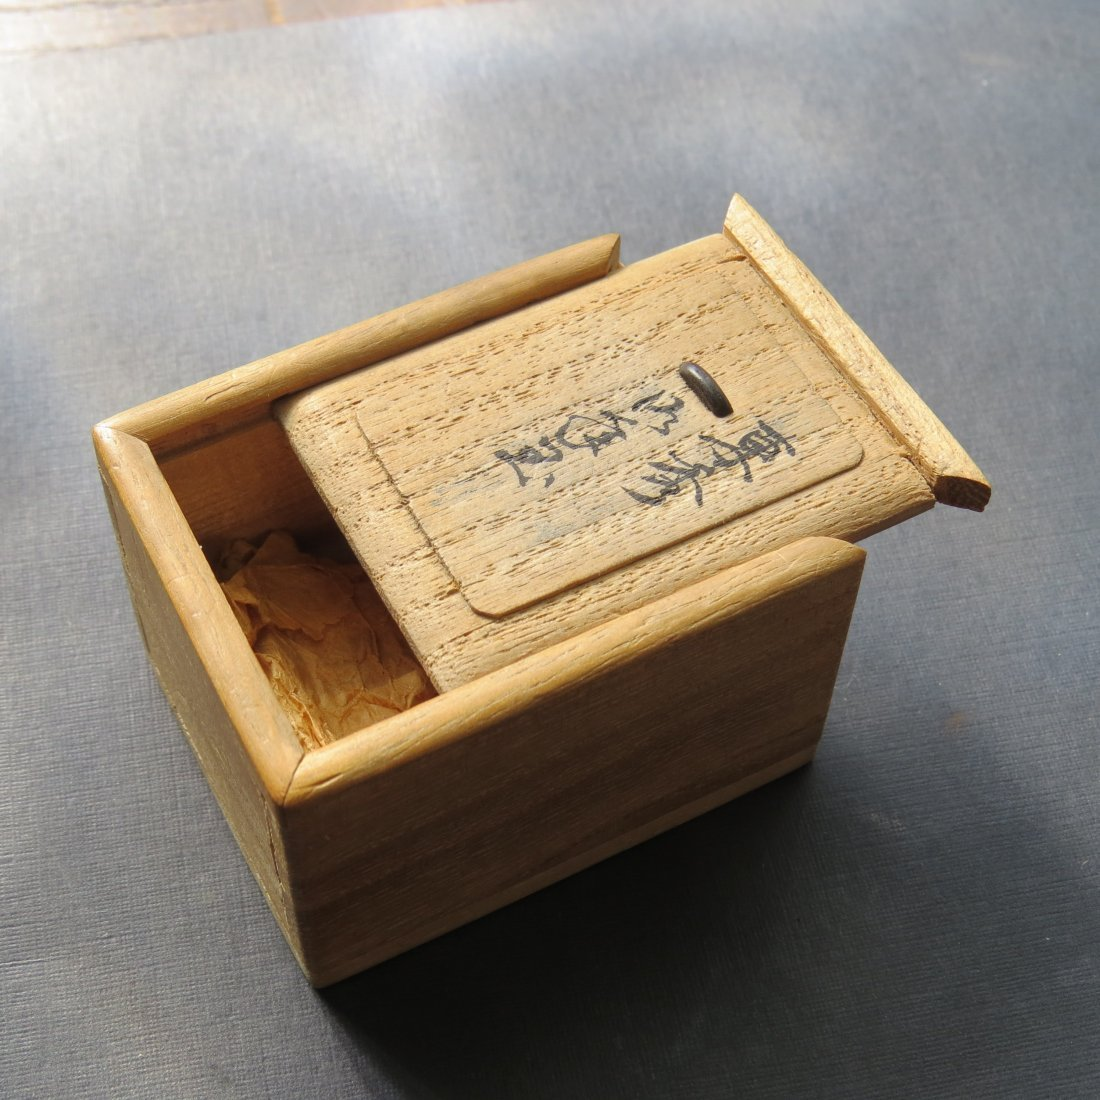 A Carved Wood Netsuke Depicting a Crate of Oranges. - 5